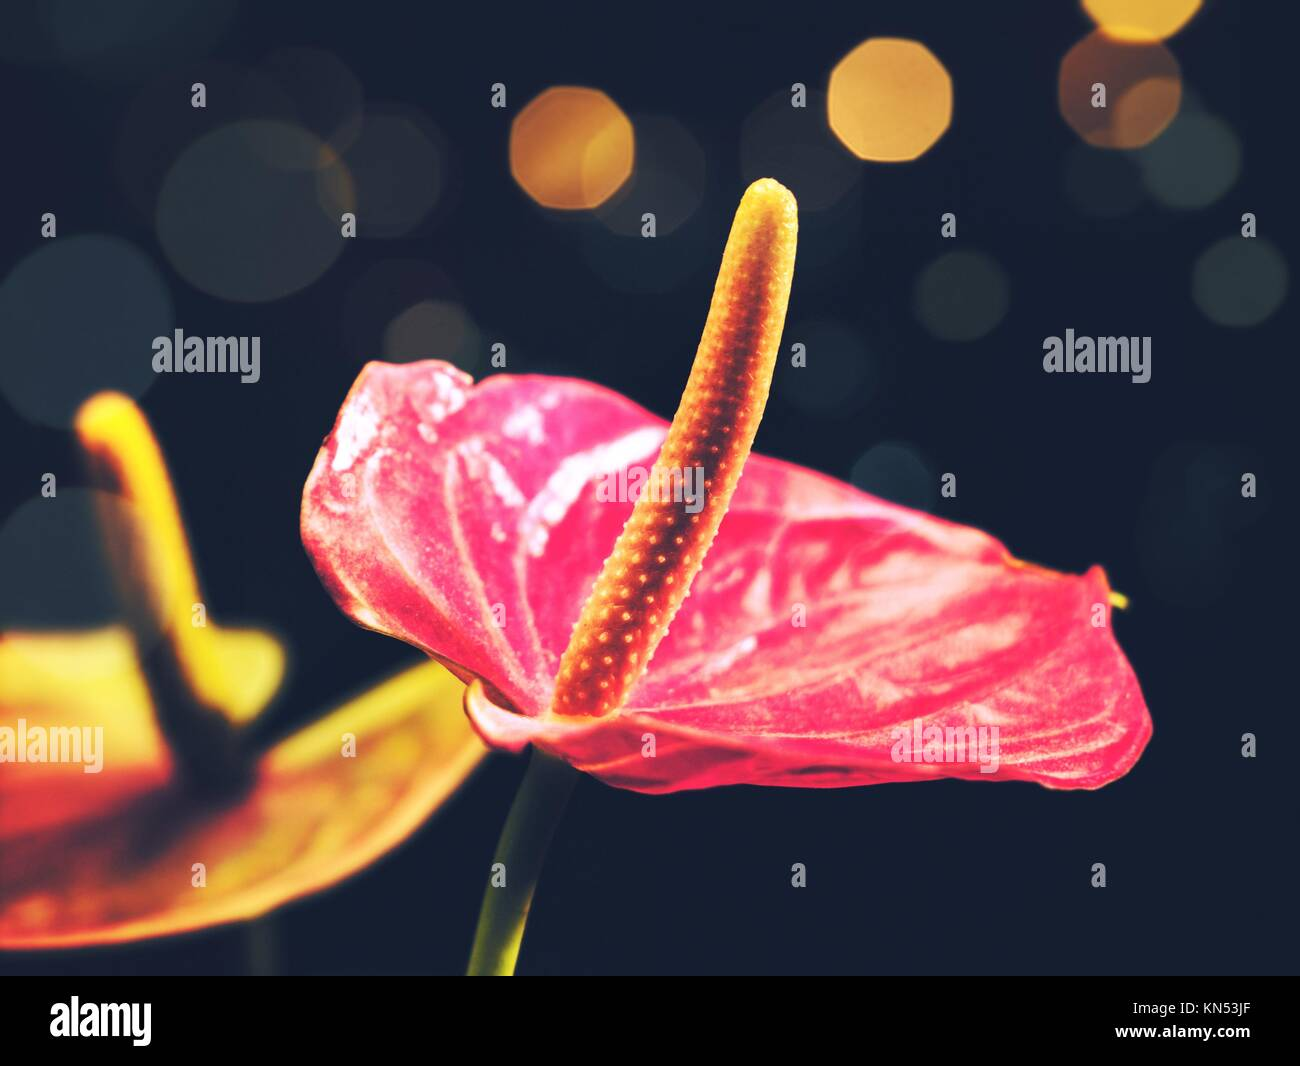 Anthurium flowers stock photos anthurium flowers stock images alamy beauty anthurium flowers vintage floral backgrounds stock image izmirmasajfo